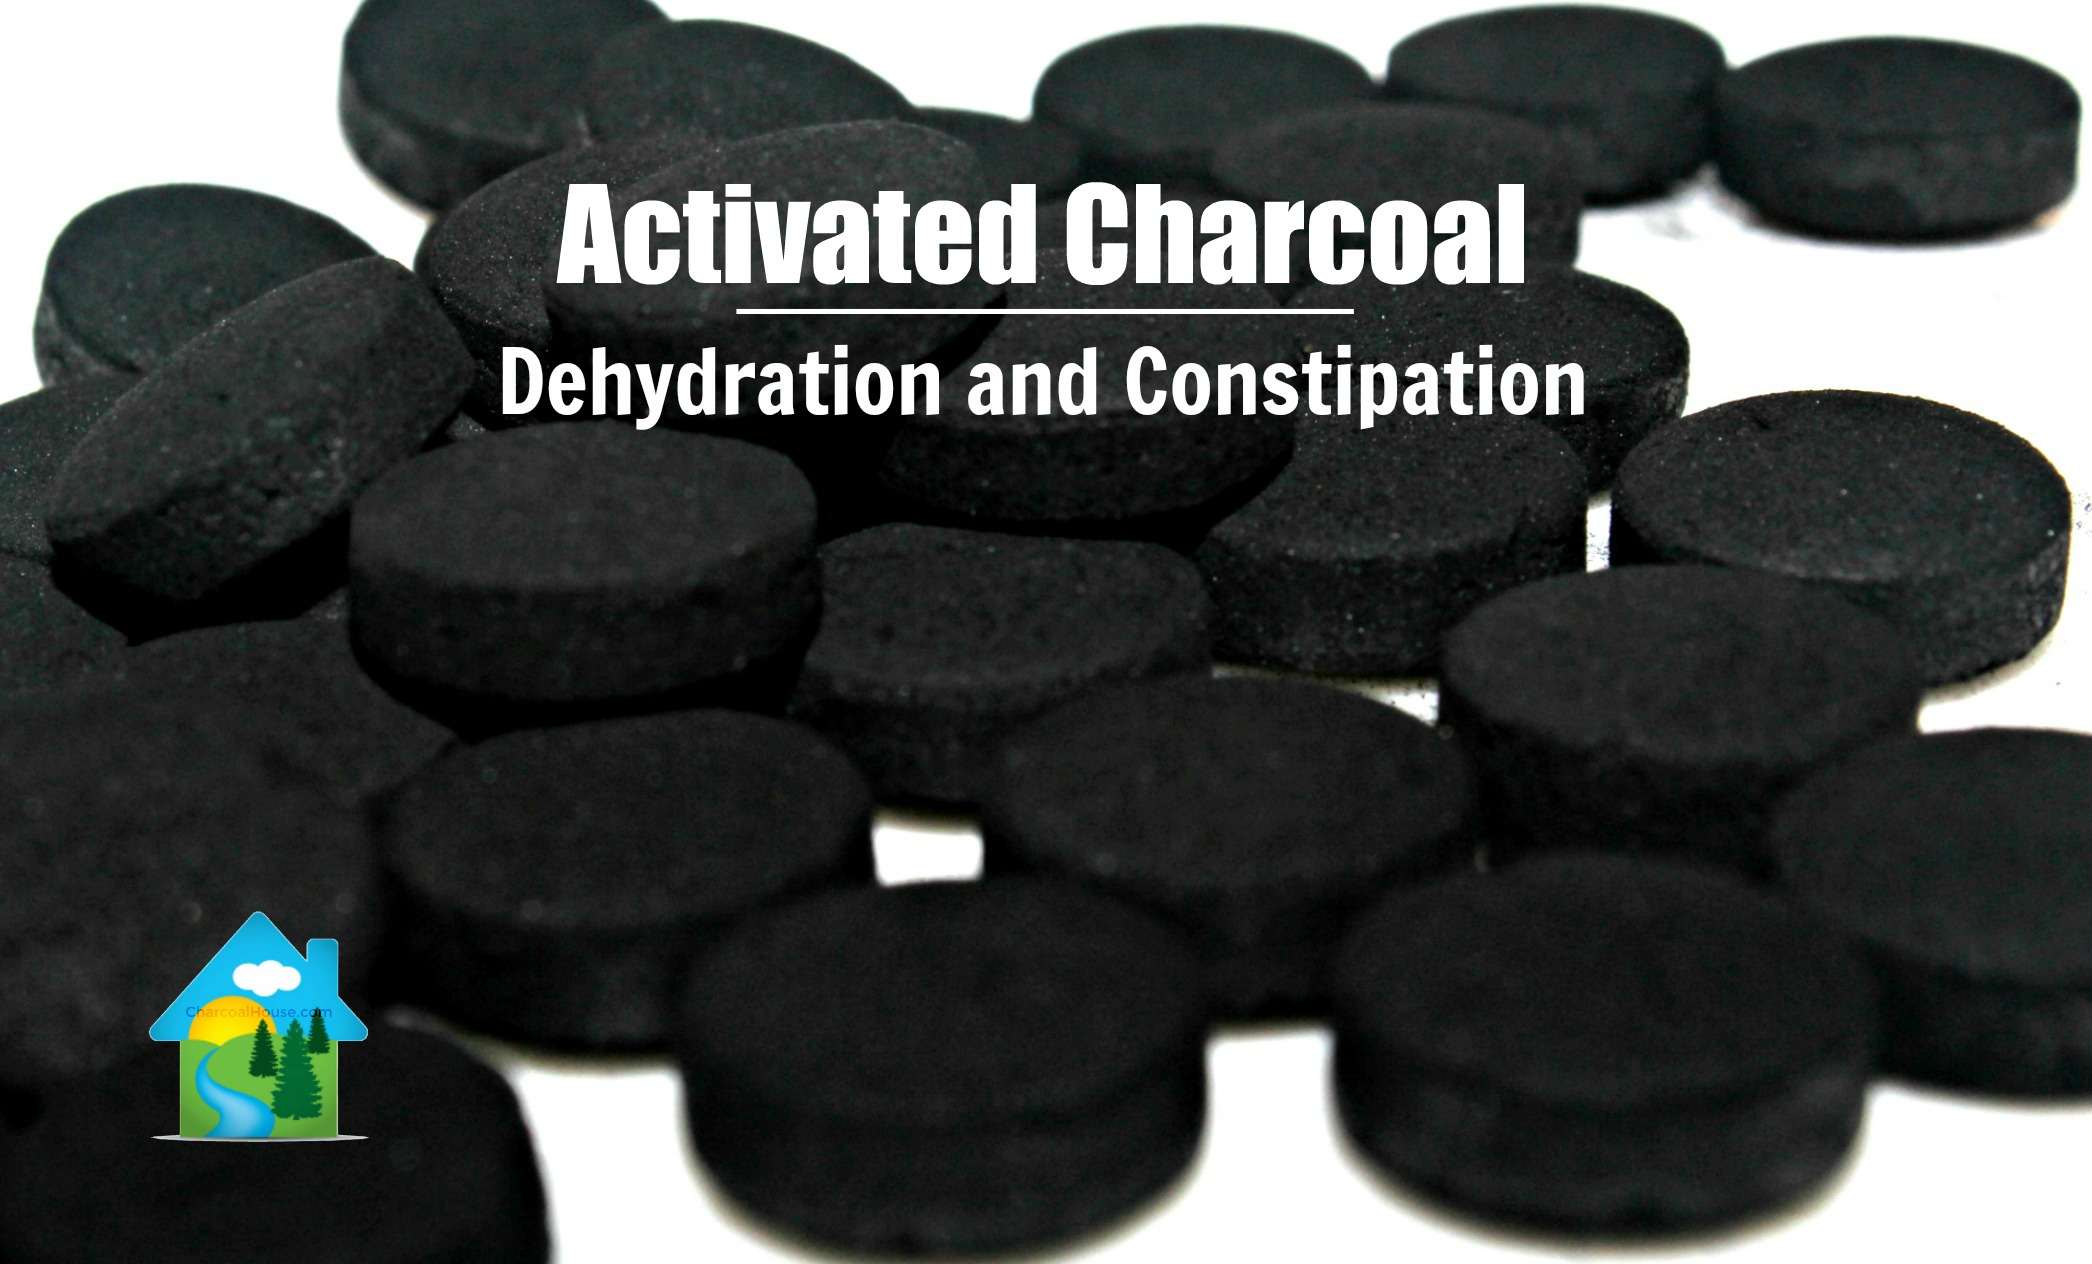 Dehydration and Constipation header - Dehydrated & Constipated when taking Charcoal